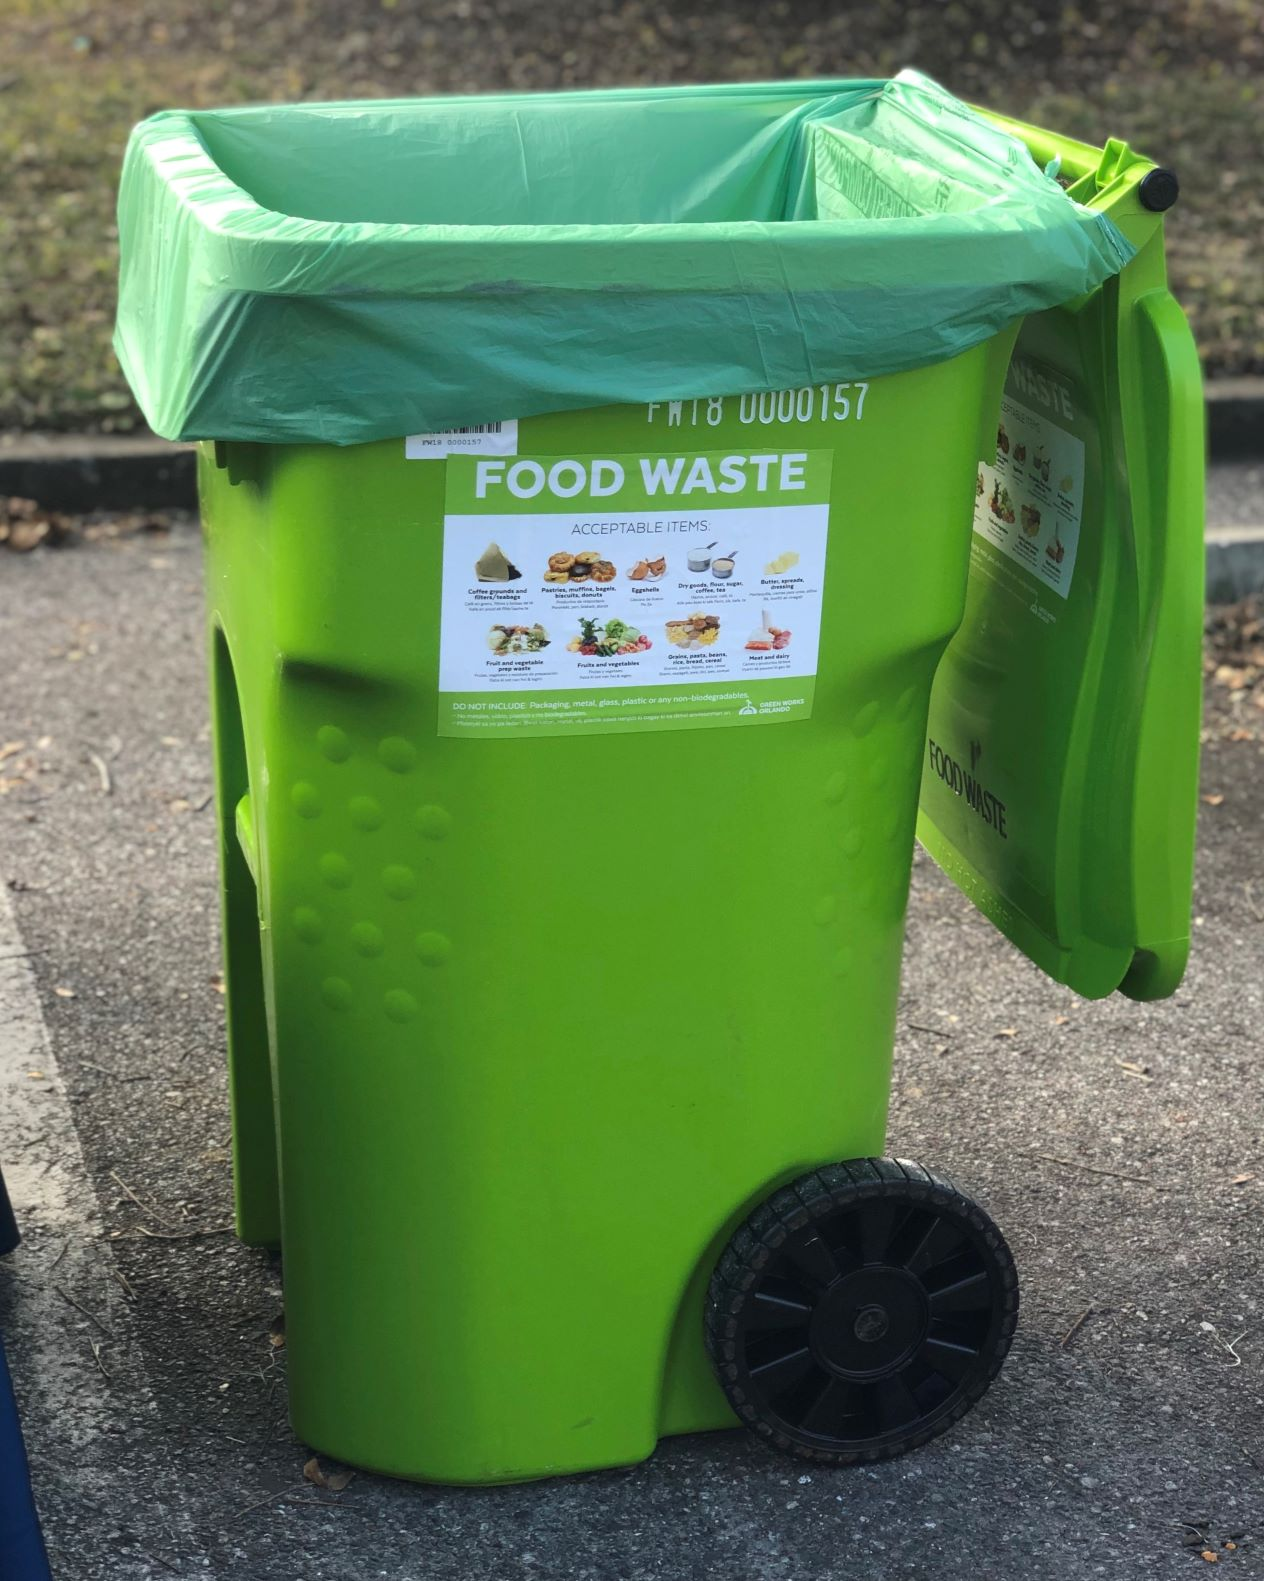 Food waste cart